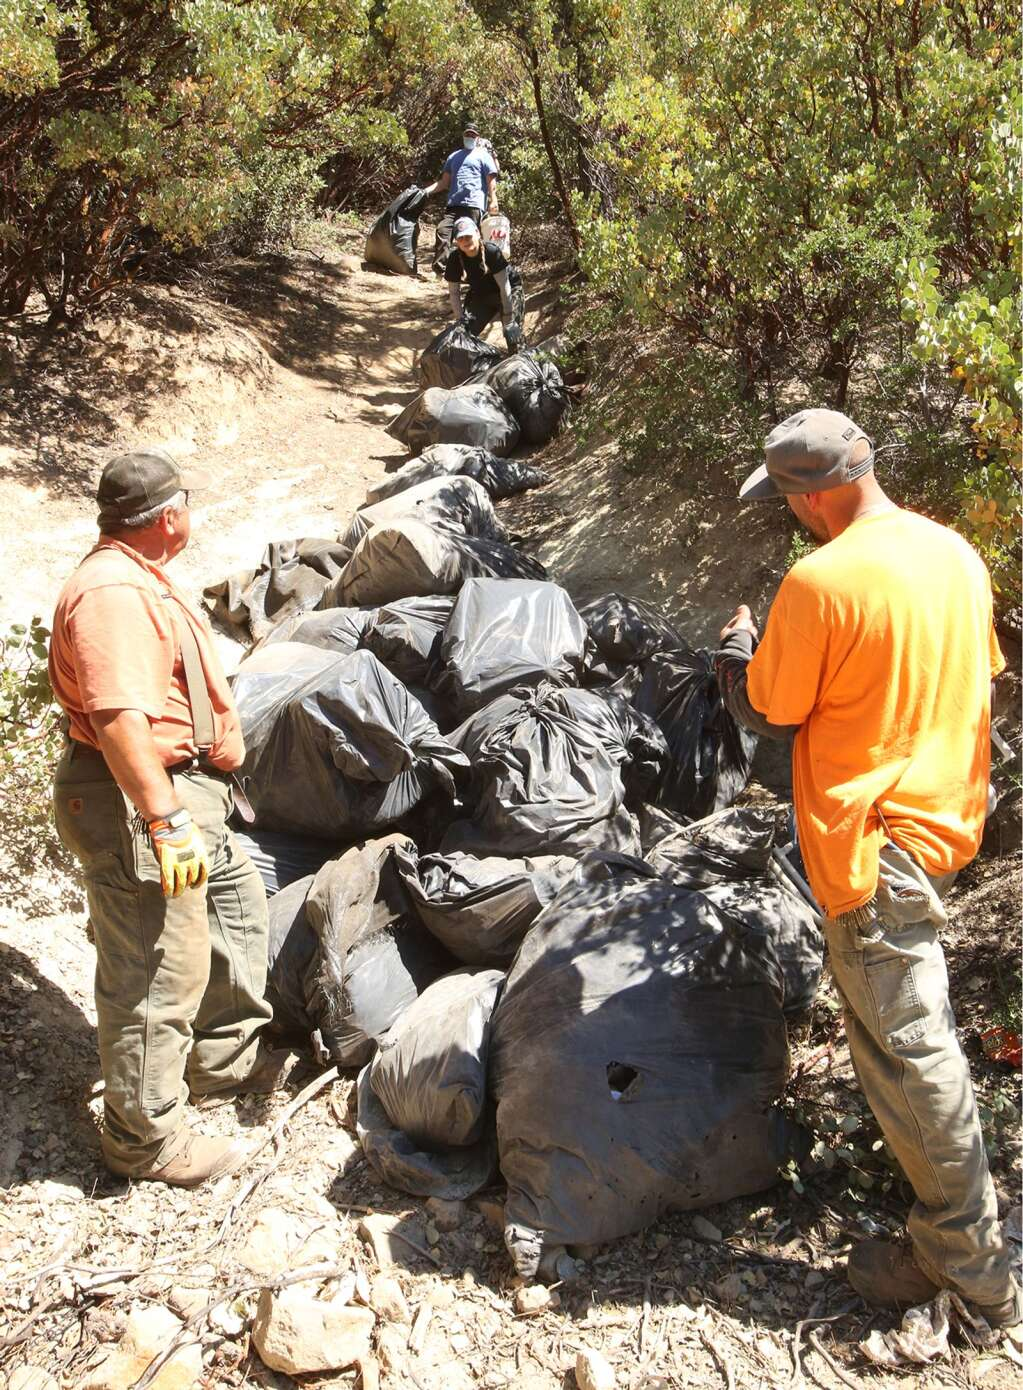 Bag after bag full of refuse pulled from the Sugarloaf Mountain homeless encampments is rolled down the trail until they can be put into garbage dumpsters July 1. | Photo: Elias Funez